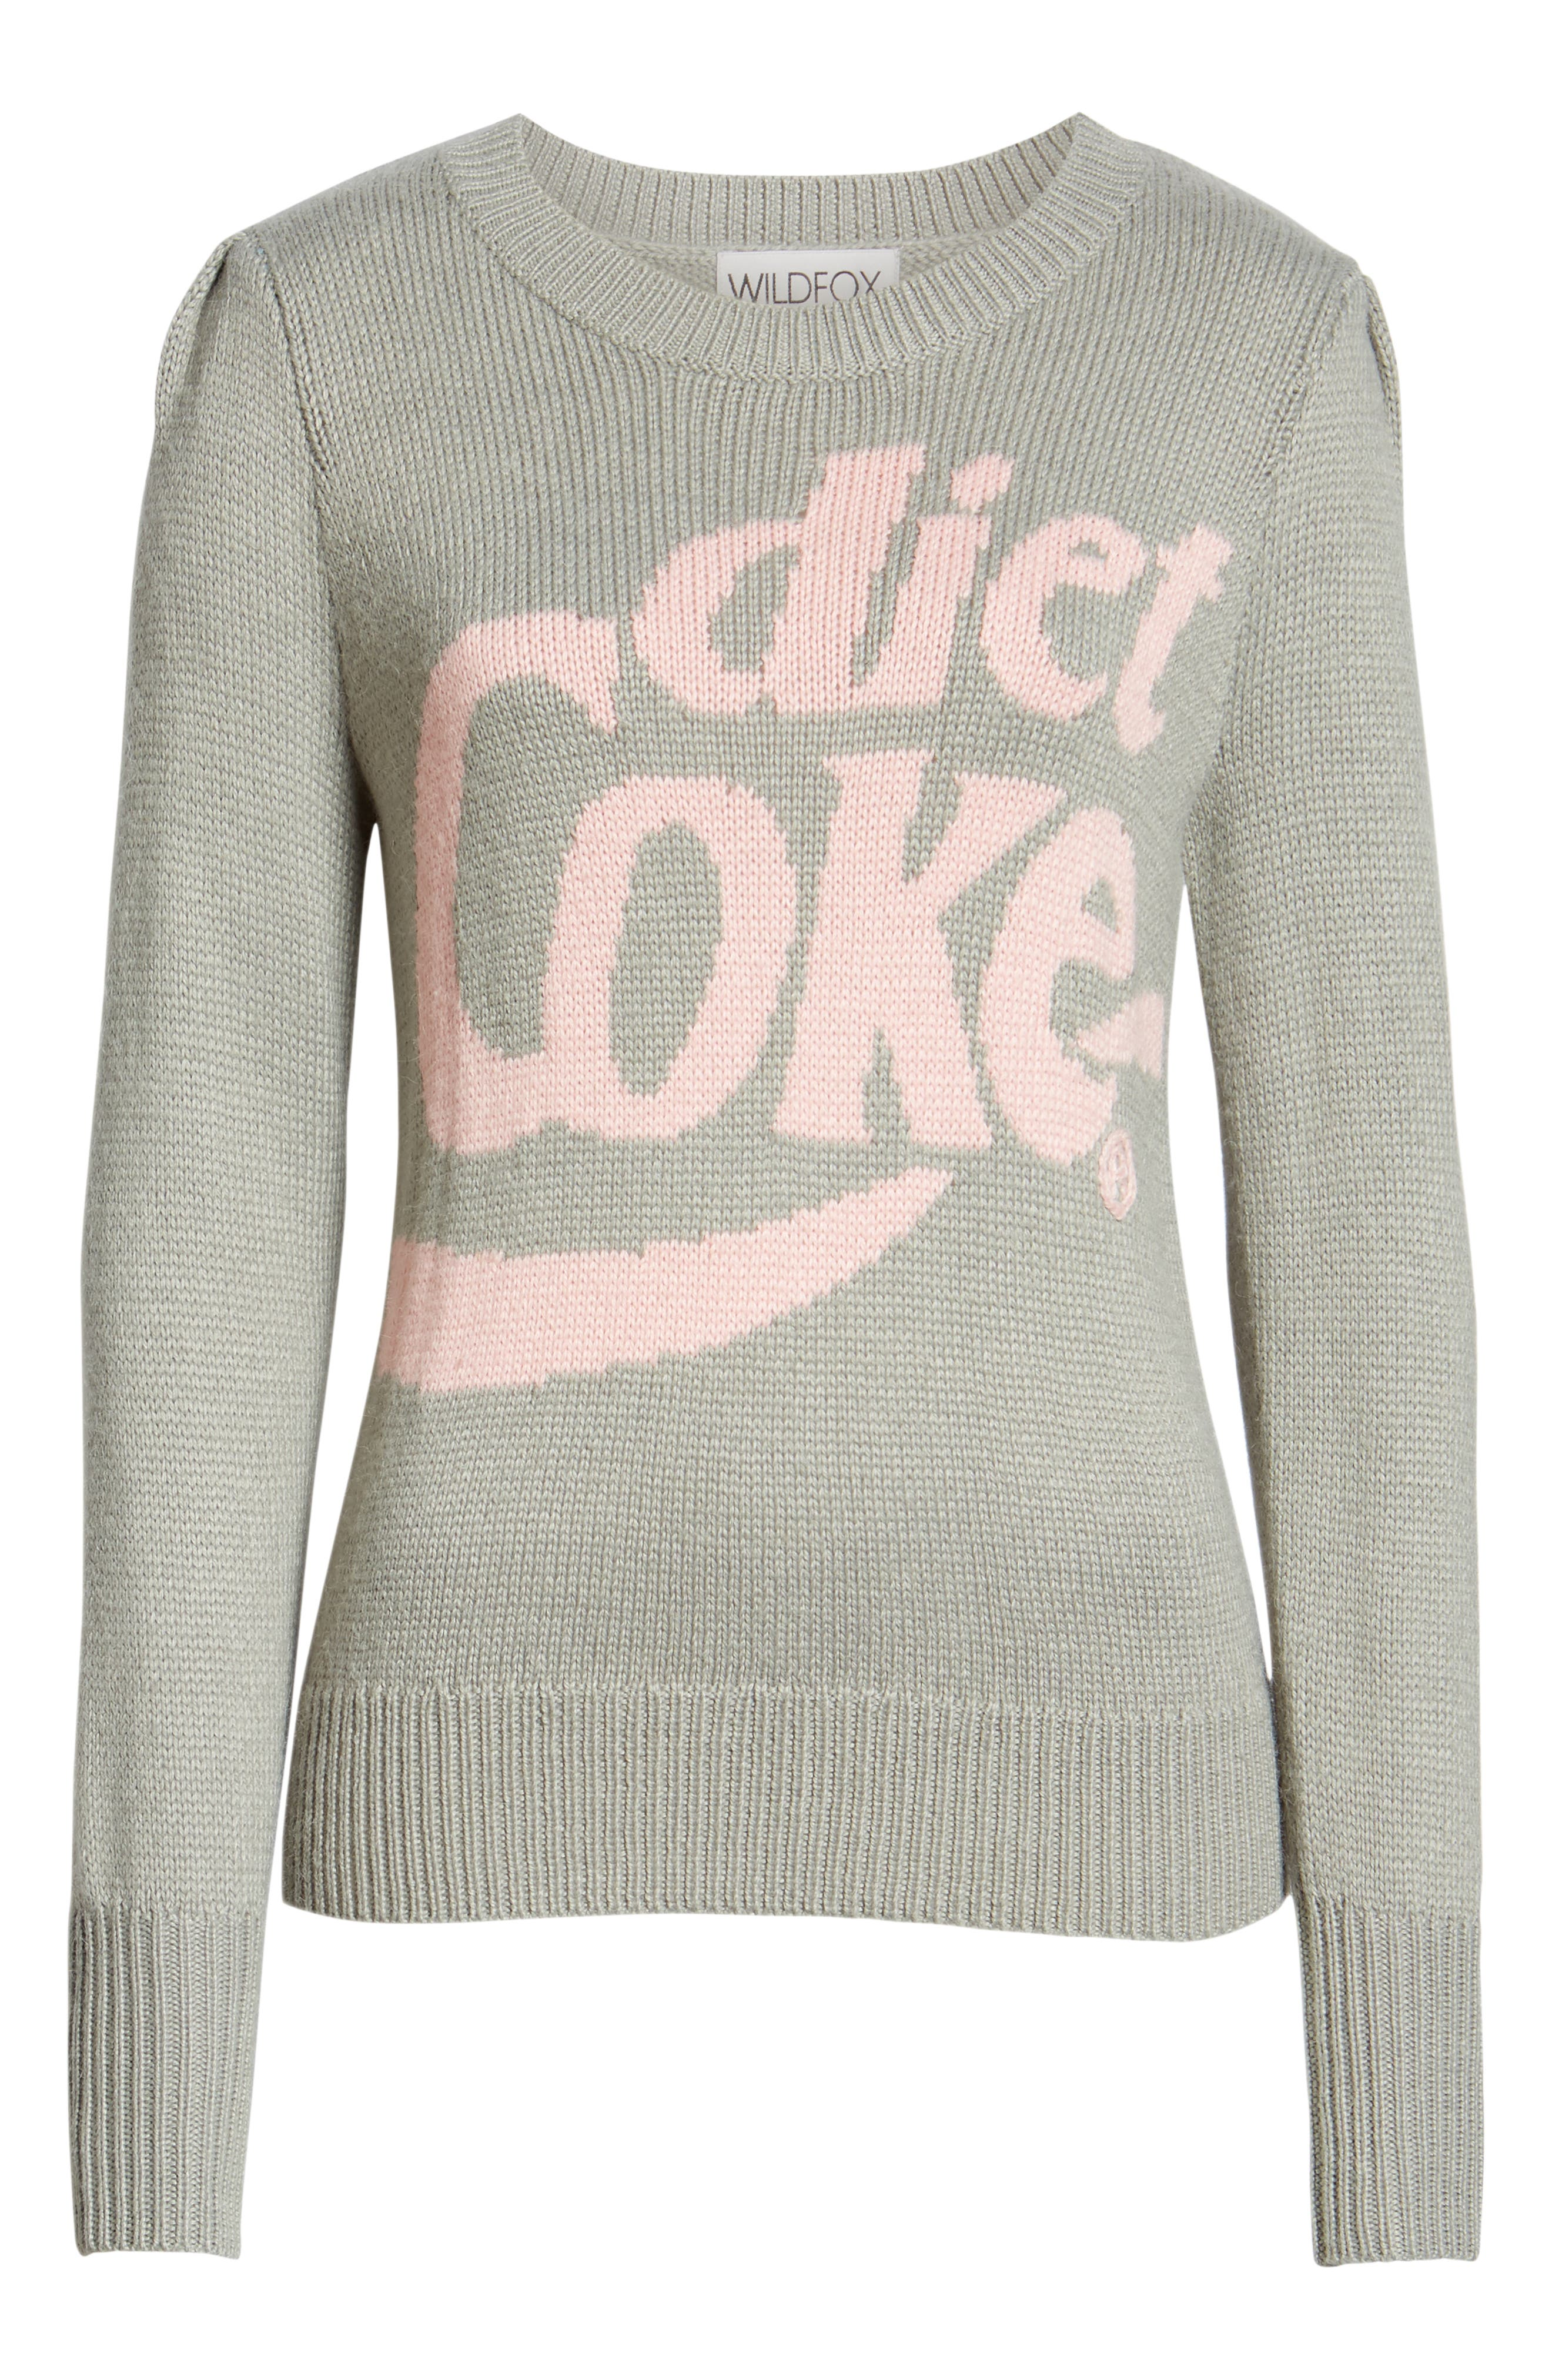 WILDFOX,                             Diet Coke<sup>®</sup> Sweater,                             Alternate thumbnail 6, color,                             050